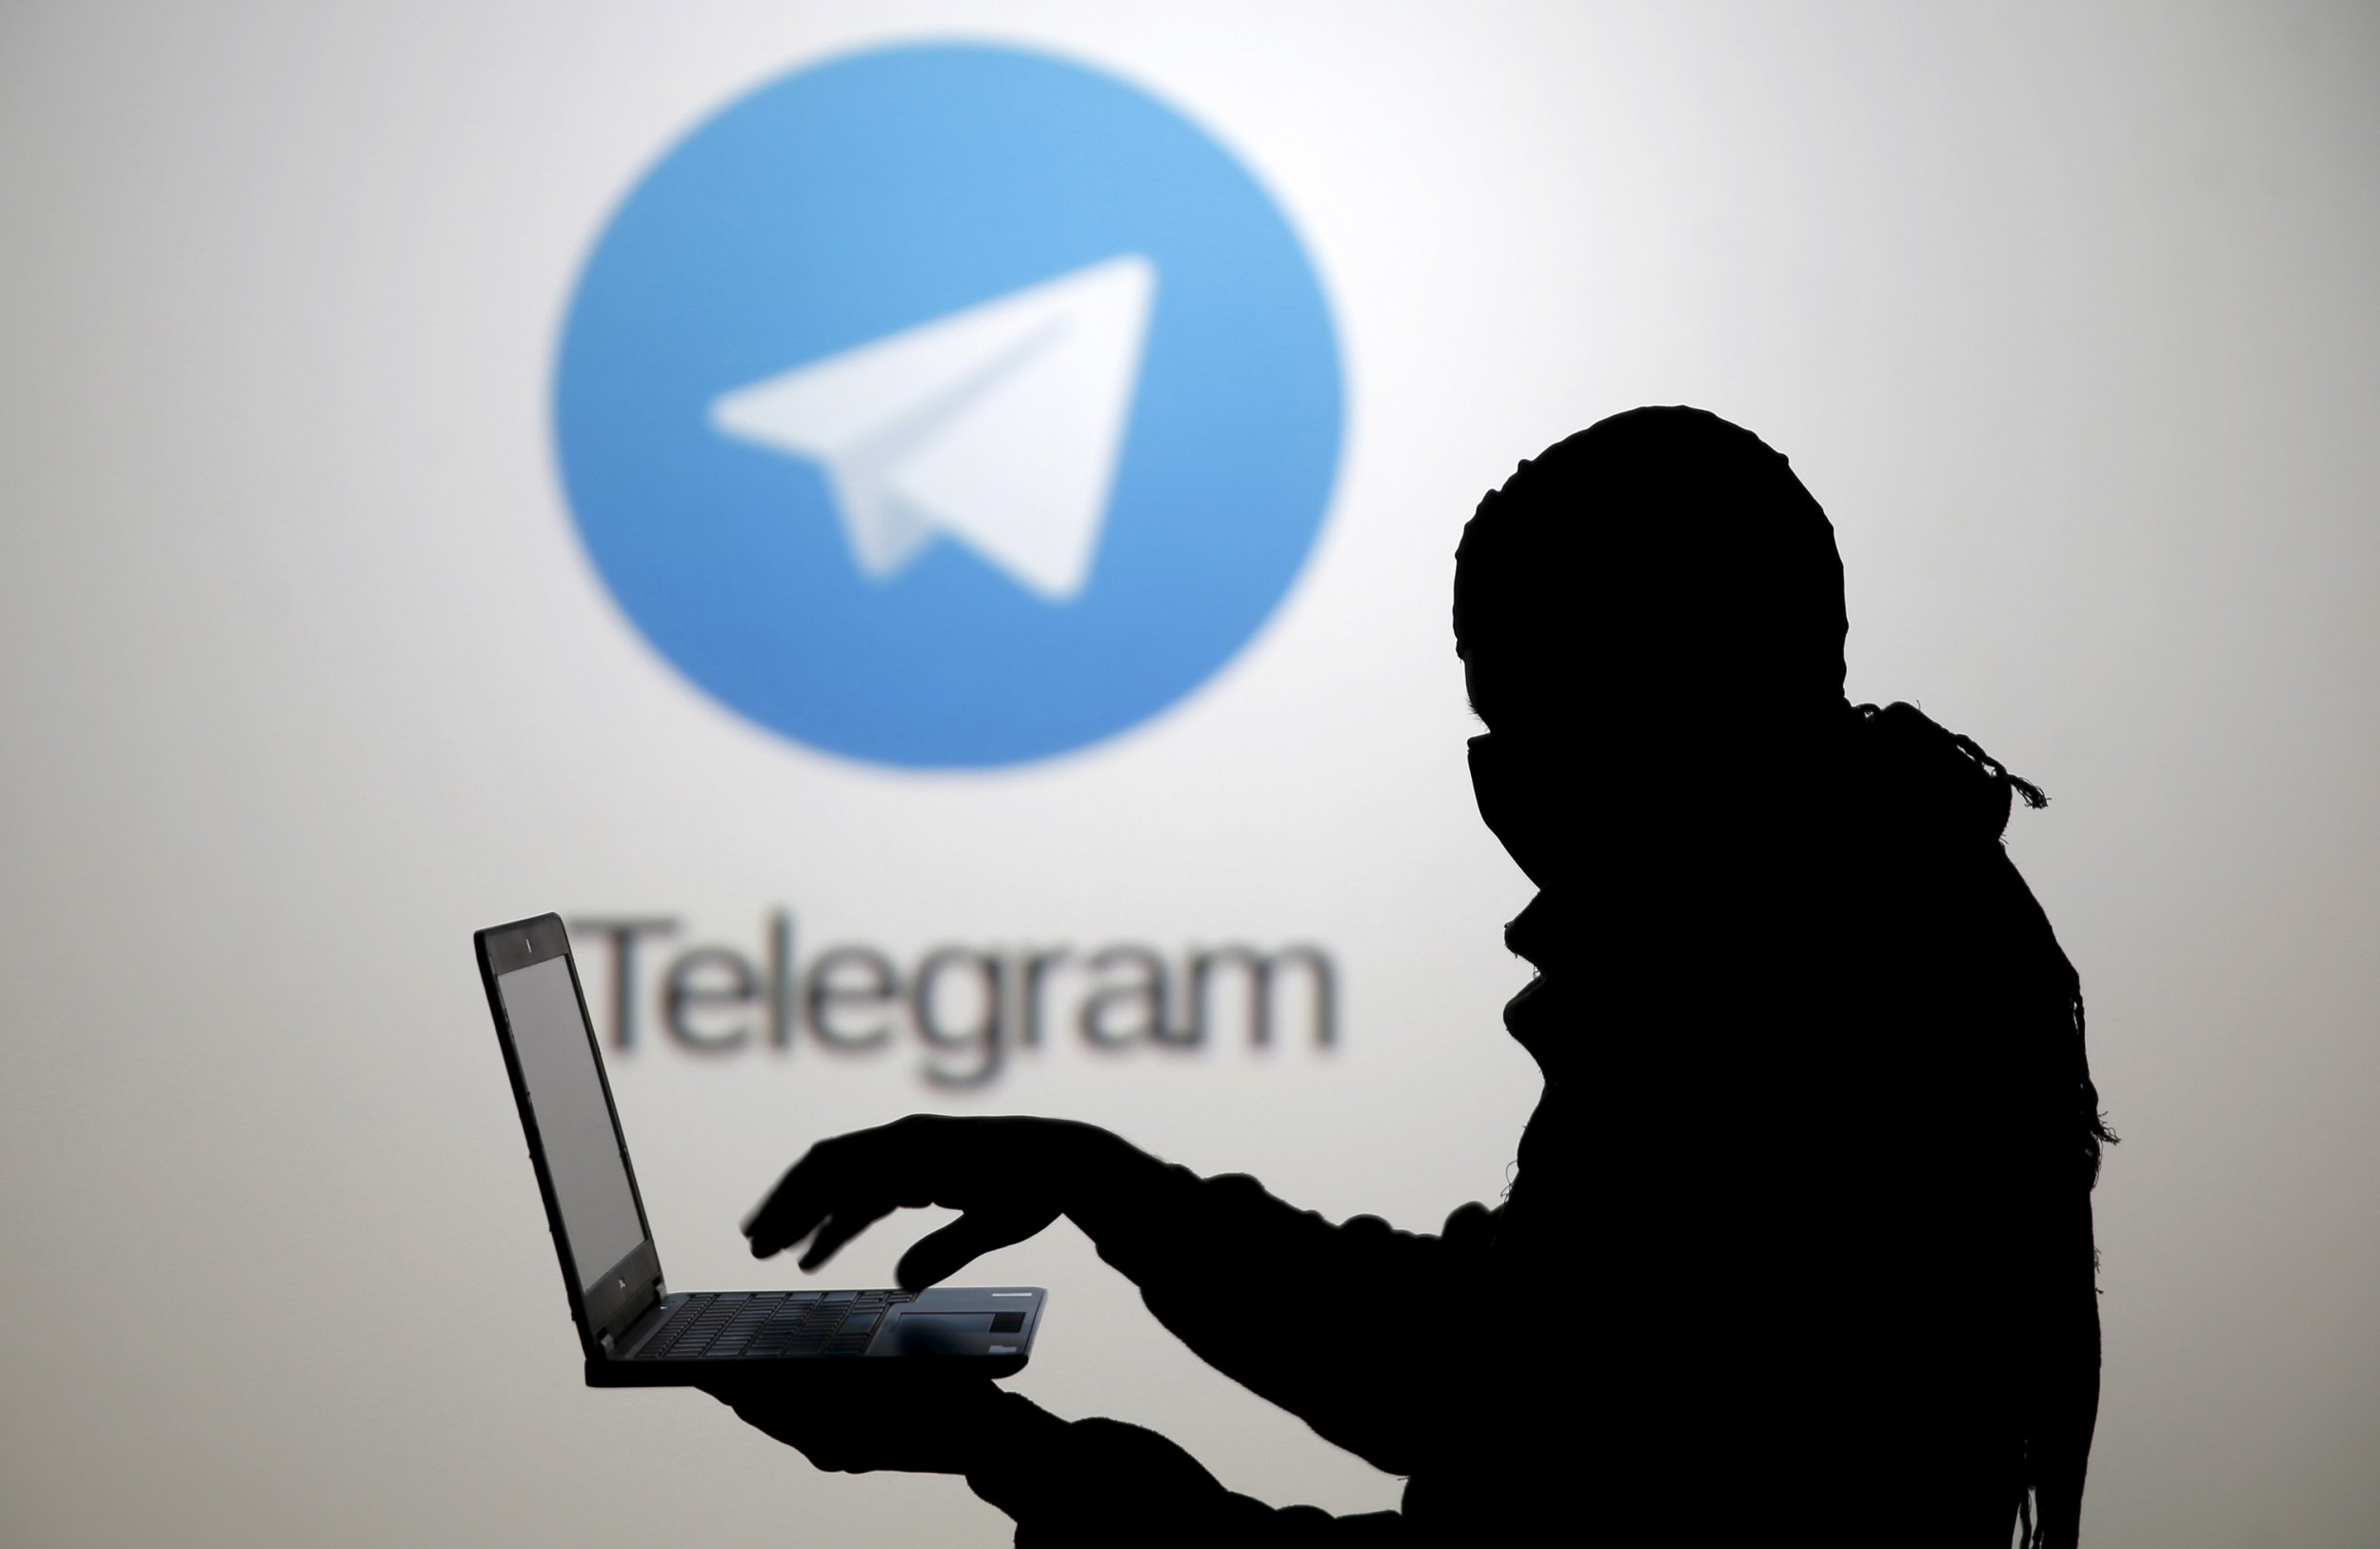 Silhouette of a man with a lap top in front of the Telegram logo